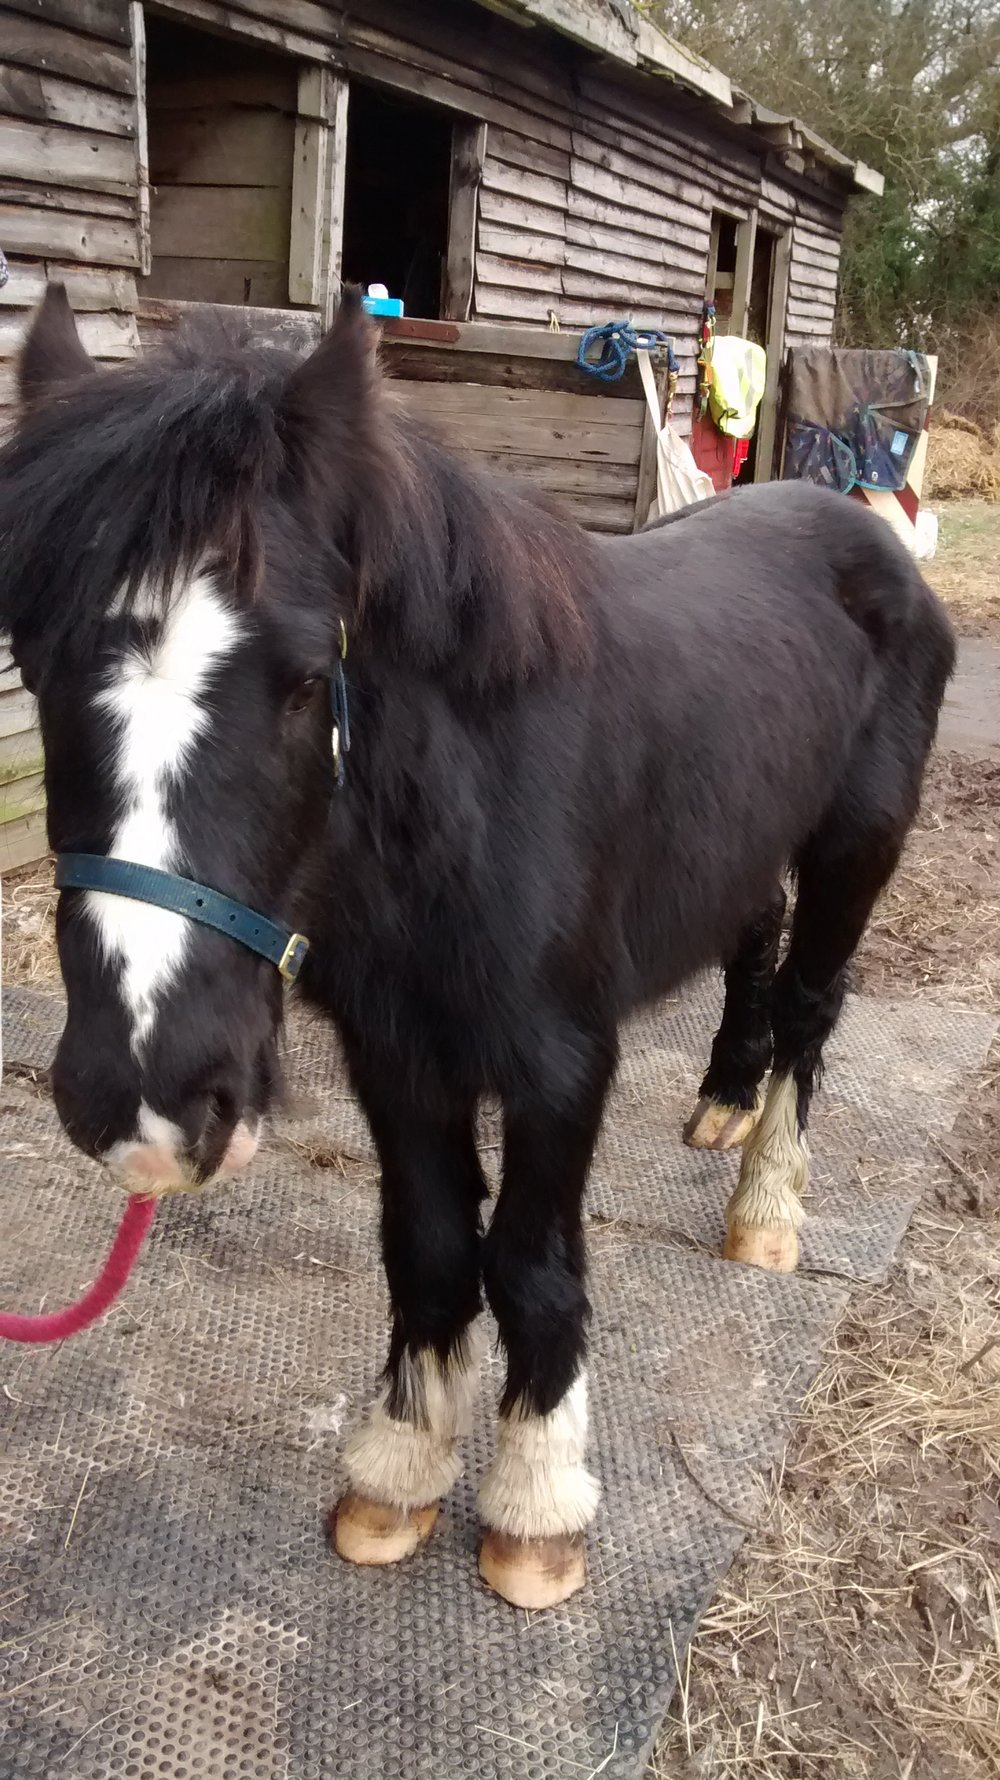 The poorly foal, now named Blackjack, isrecovering at the RSPCA's equine centre in Shropshire